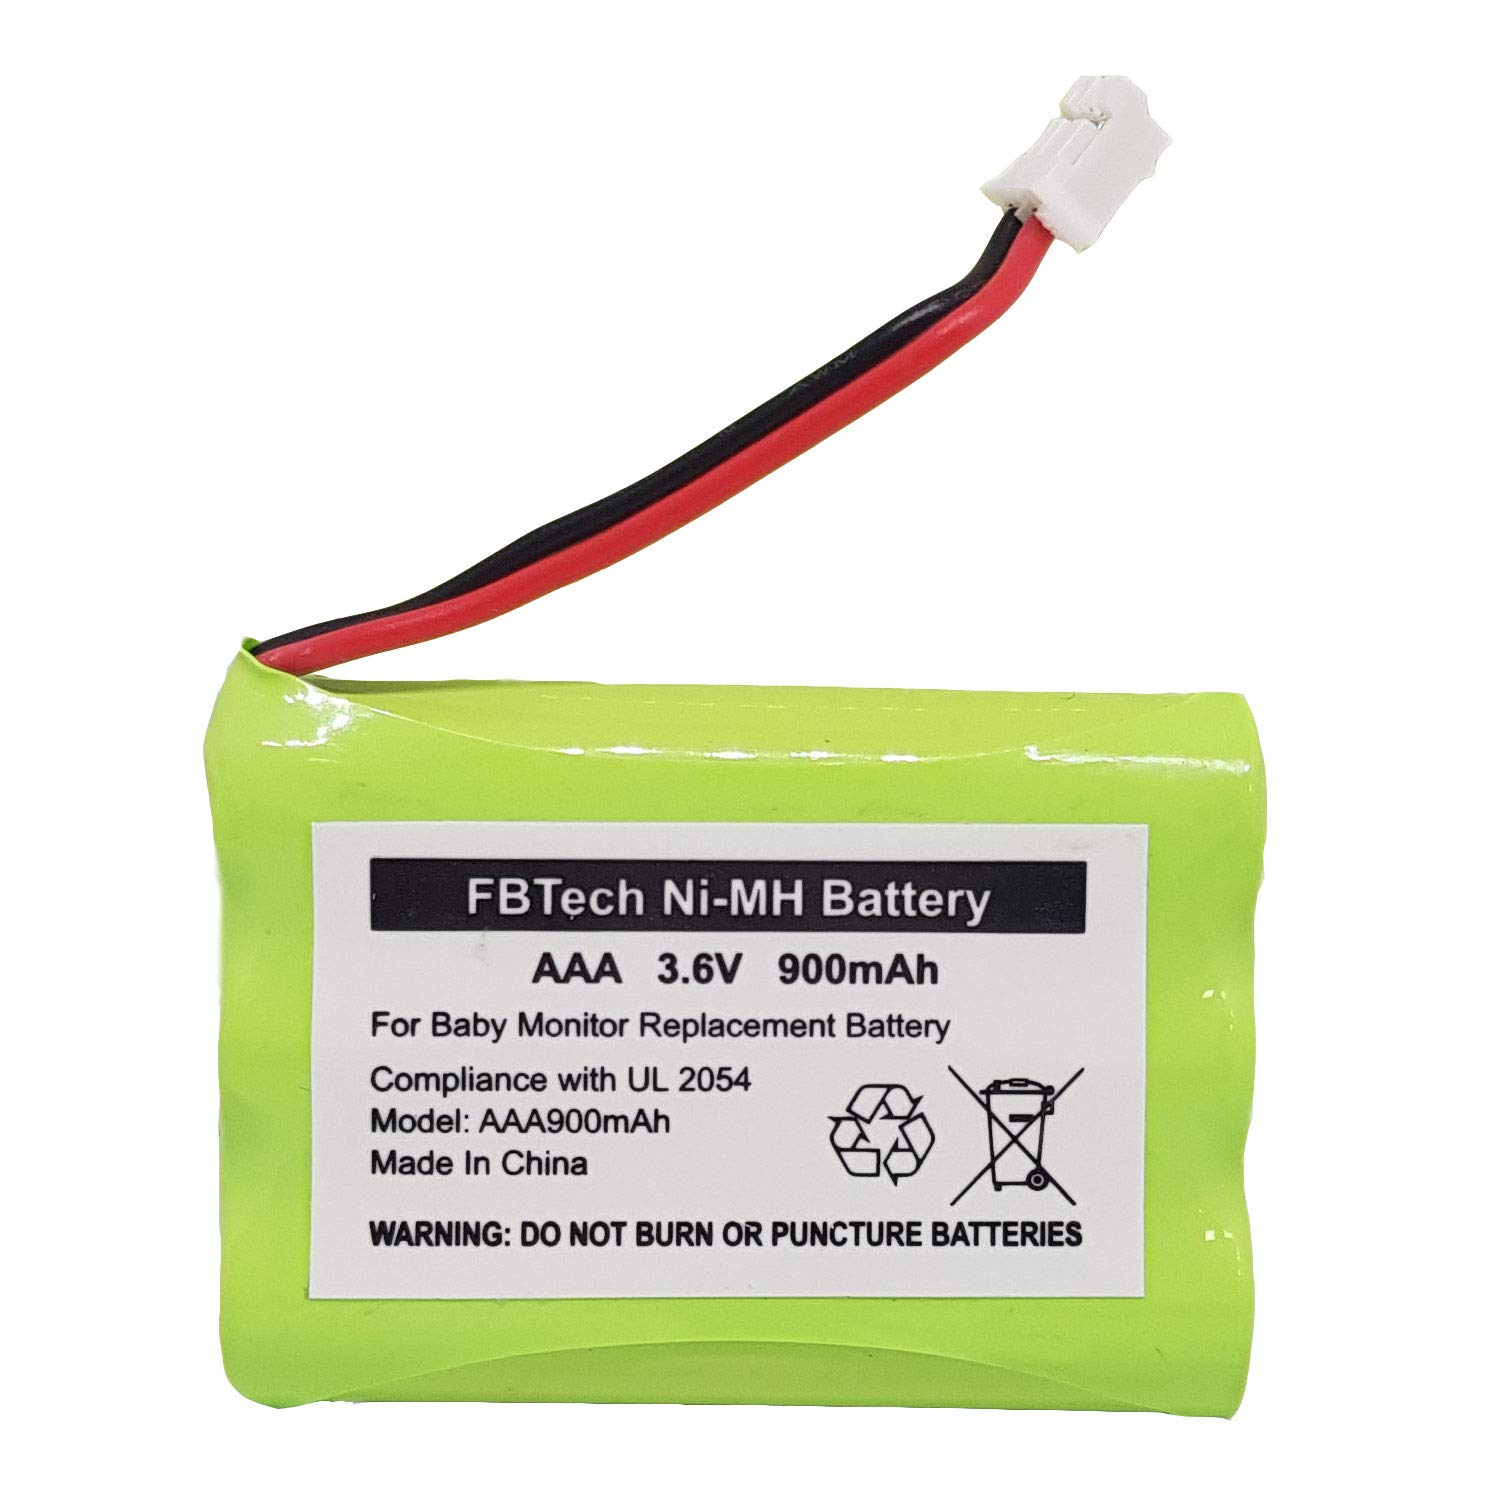 900mAh Replacement Battery for Motorola Baby Monitor 3.6V Ni-MH Battery MBP18 MBP26 MBP27T MBP33 MBP36 MBP41 MBP43 MBP622 MBP667CONNECT MBP668 MBP843 MBP853CONNECT, Not Compatible with MBP36S